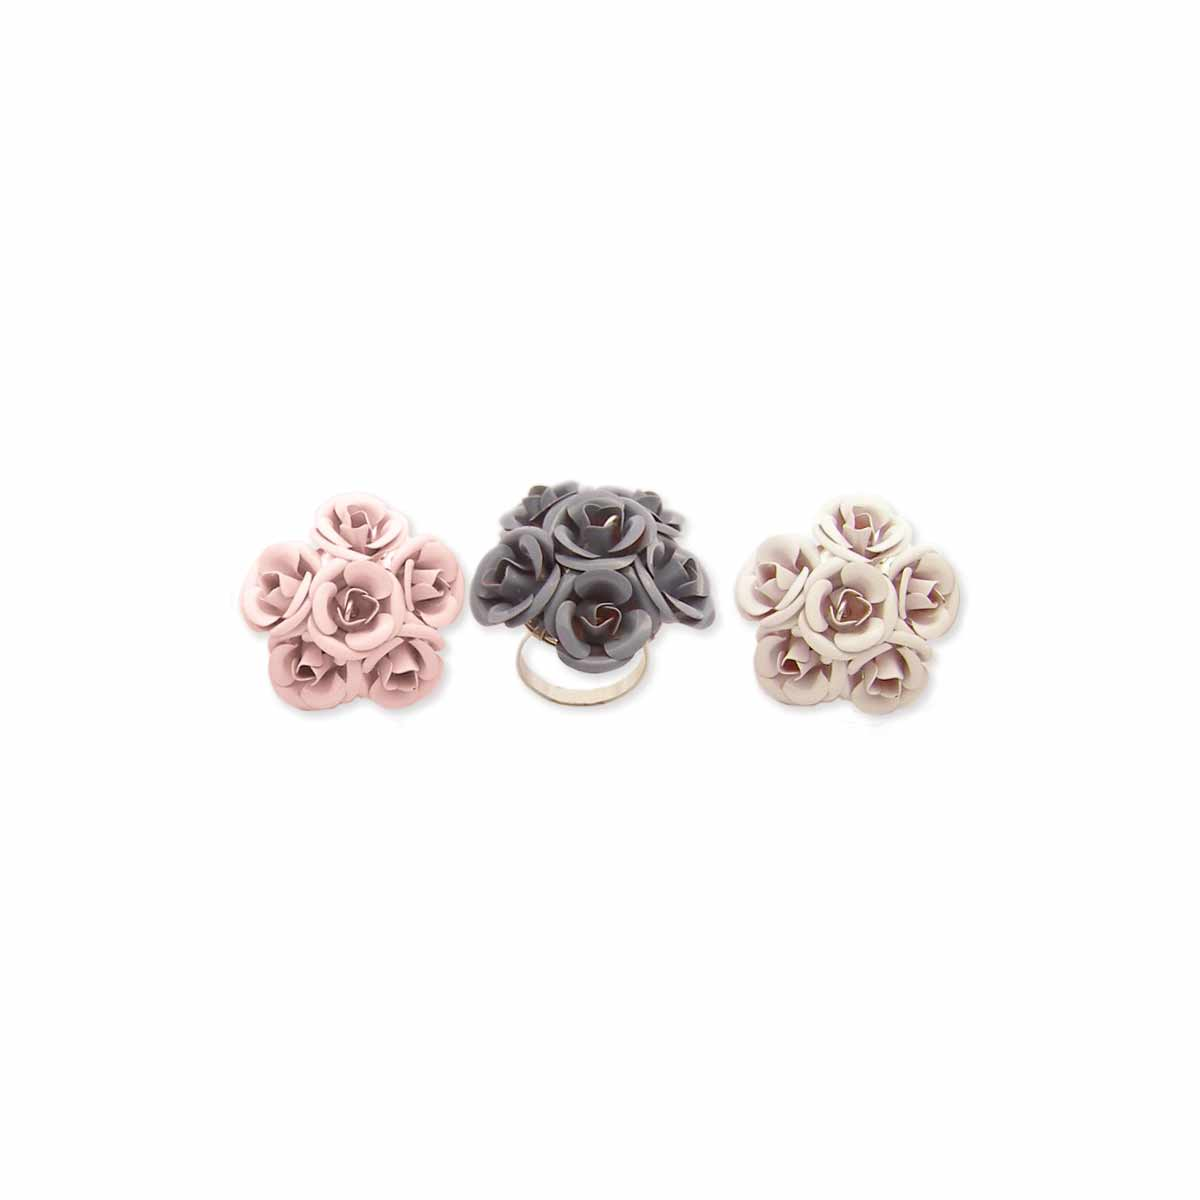 Enamel Rose Adjustable Ring